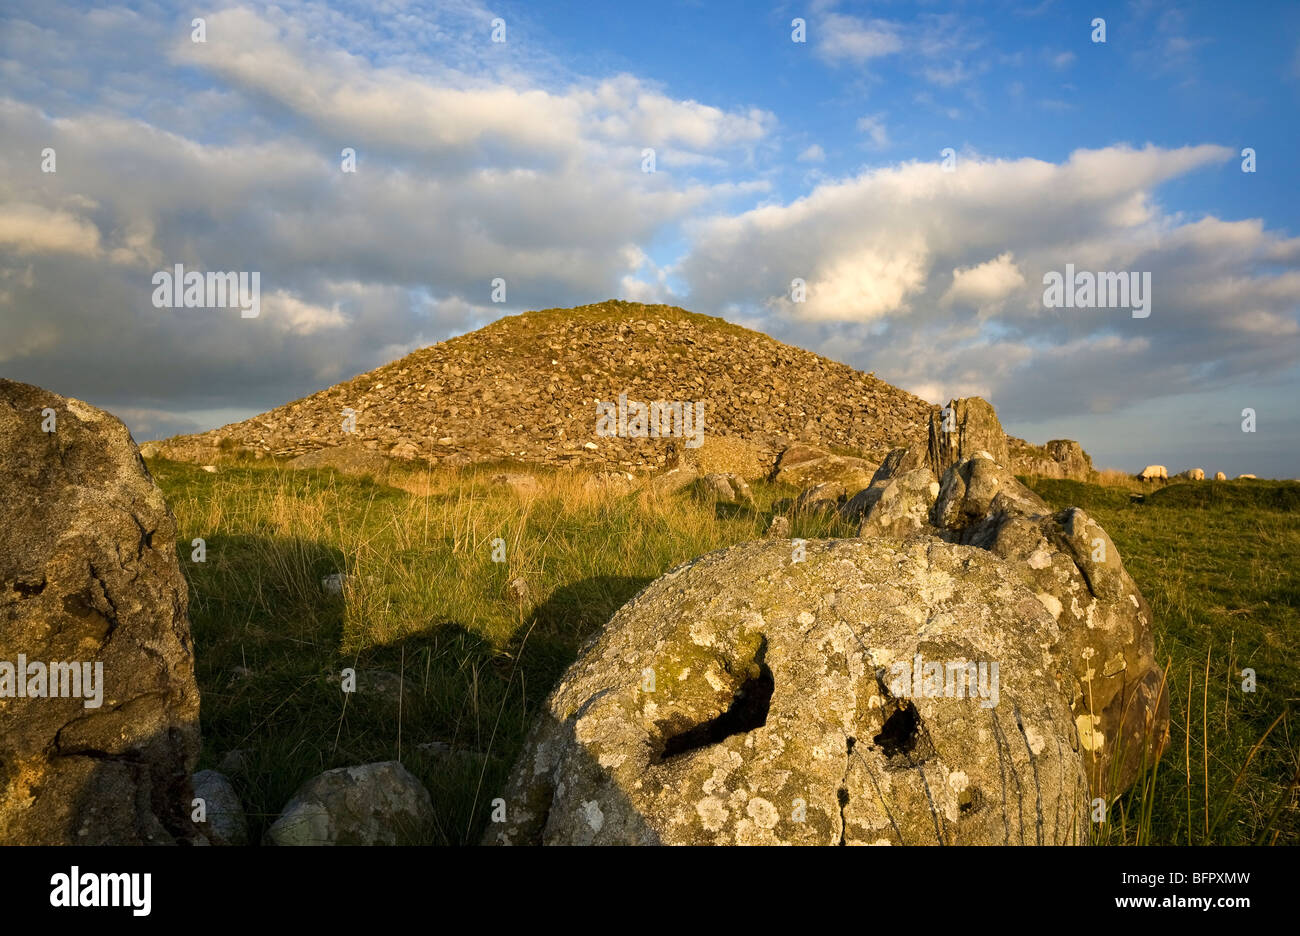 Cairn T Passage Grave, Loughcrew Meagalithic Site, Slieve na Calliagh, Near Oldcastle, County Meath, Ireland Stock Photo